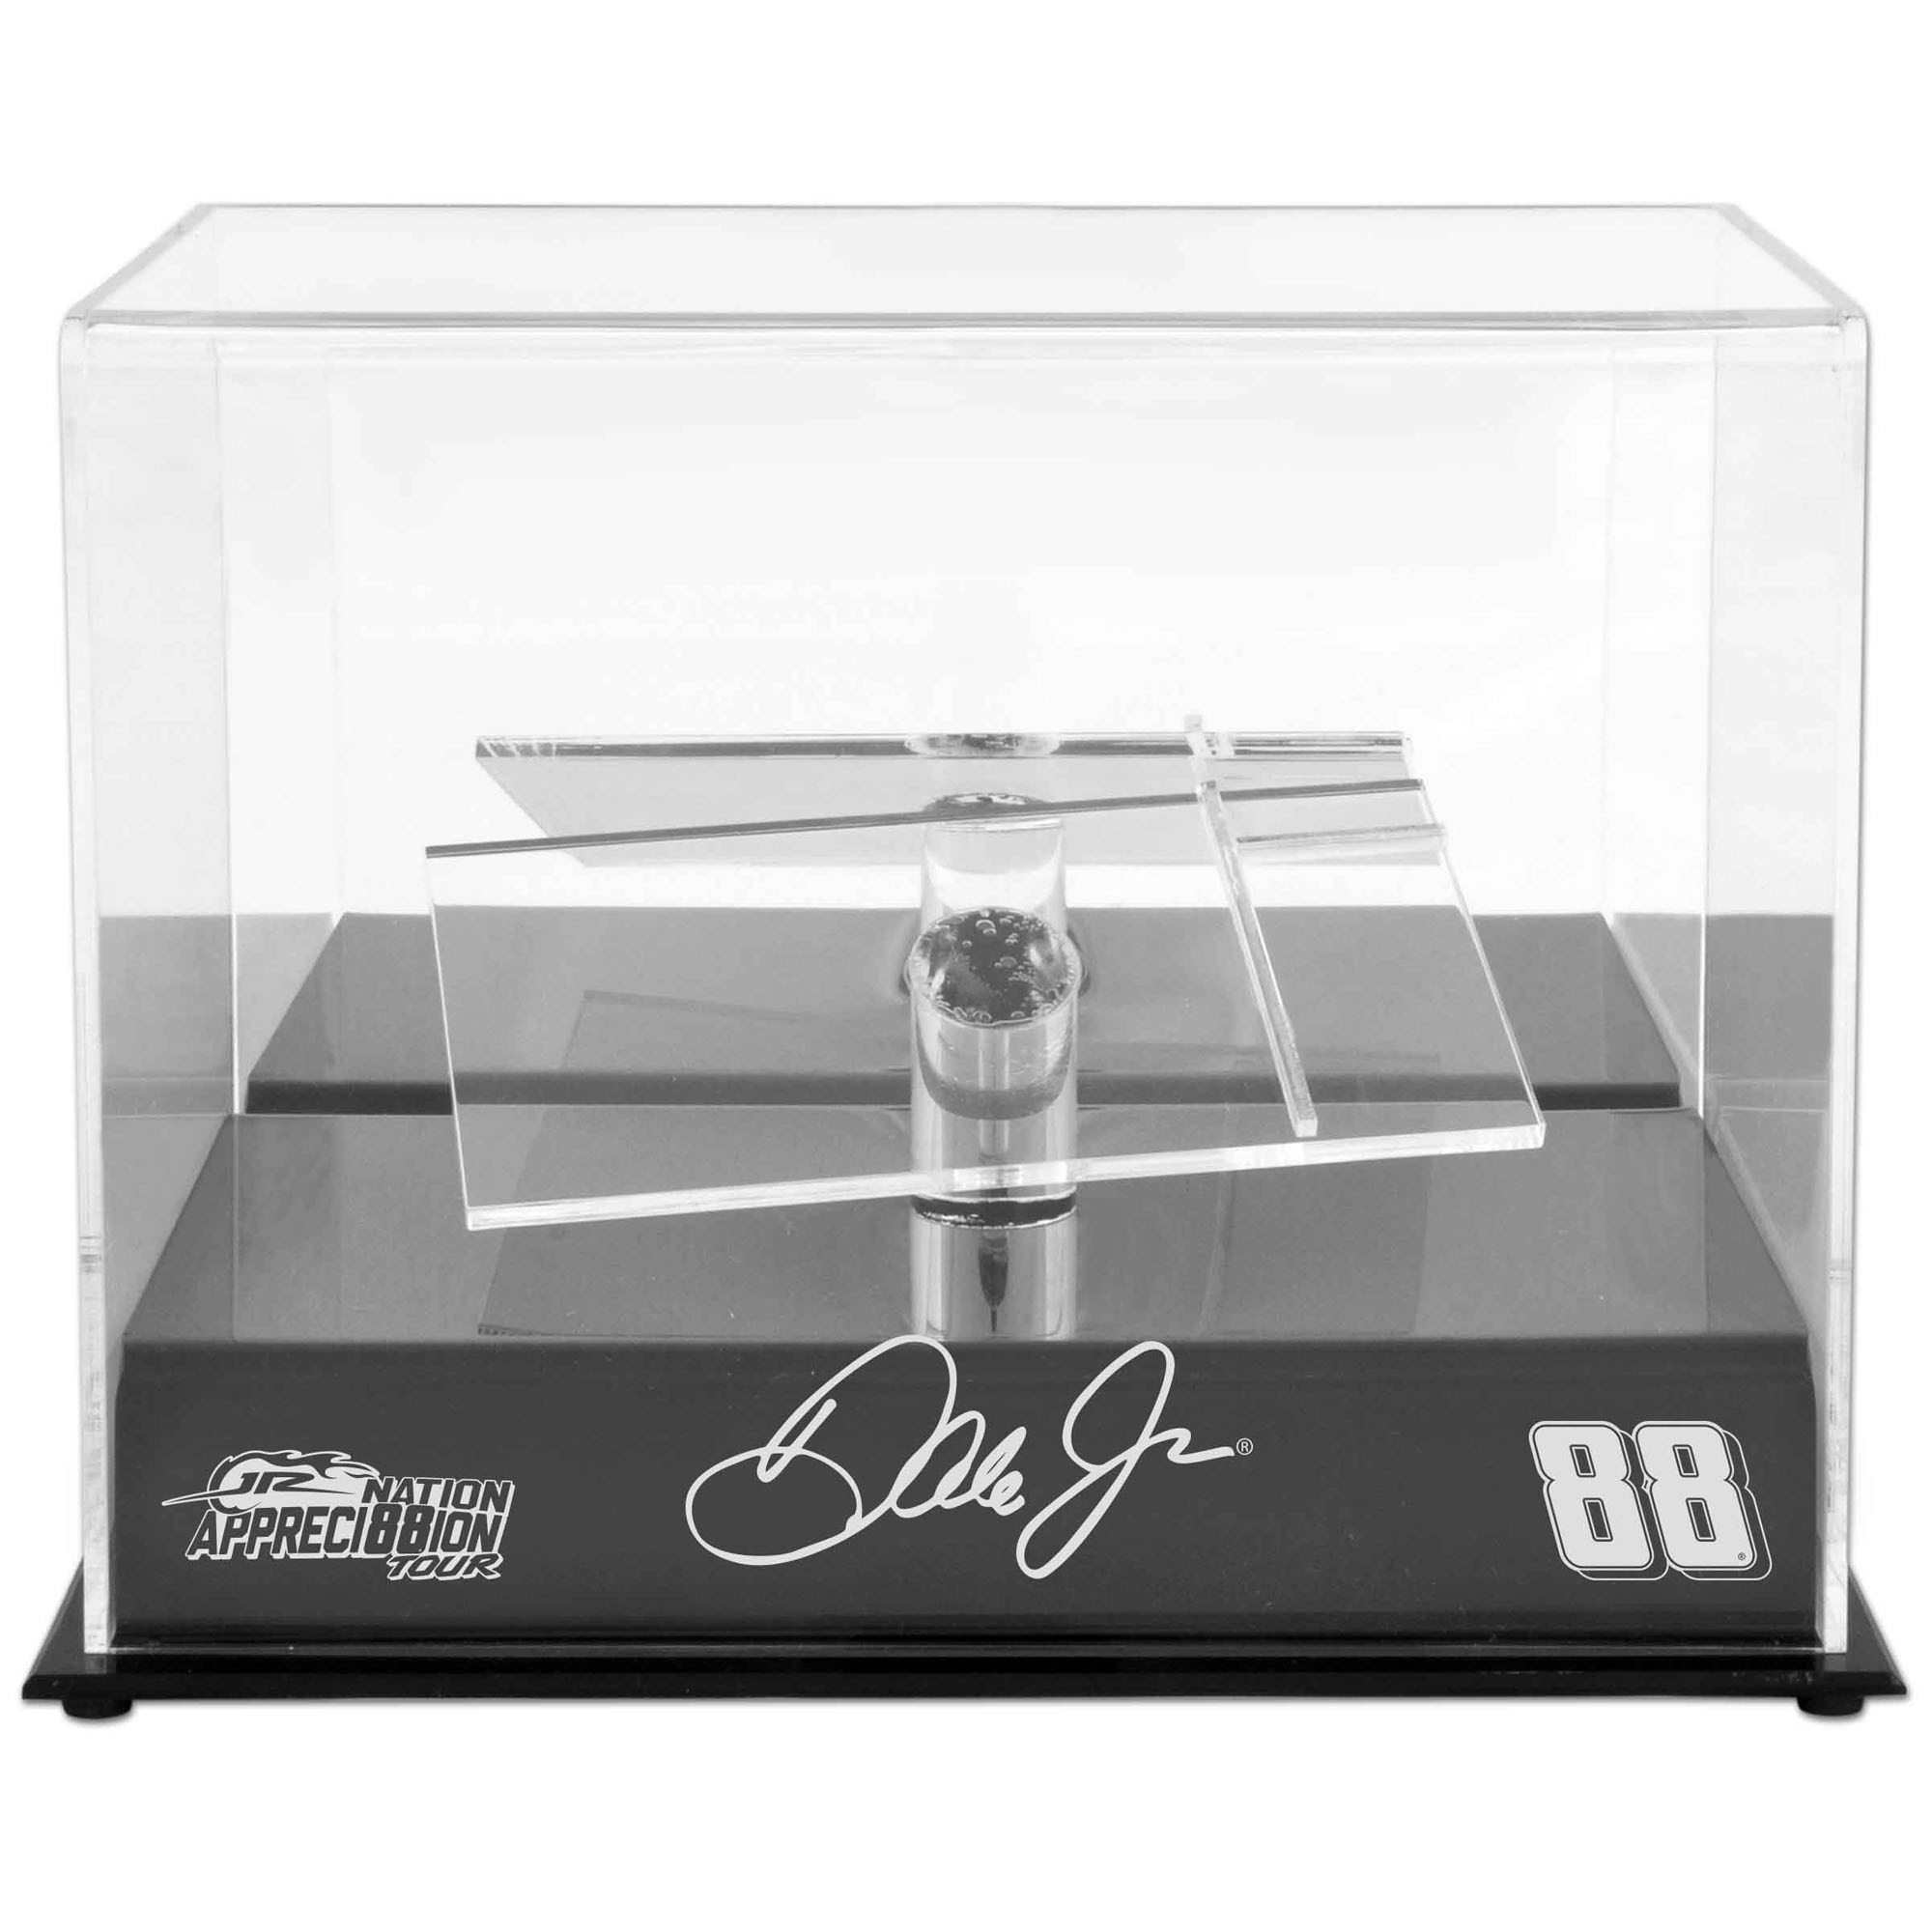 Dale Earnhardt Jr. Fanatics Authentic Die-Cast Case with Platforms and JR Nation Appreci88ion Logo - No Size